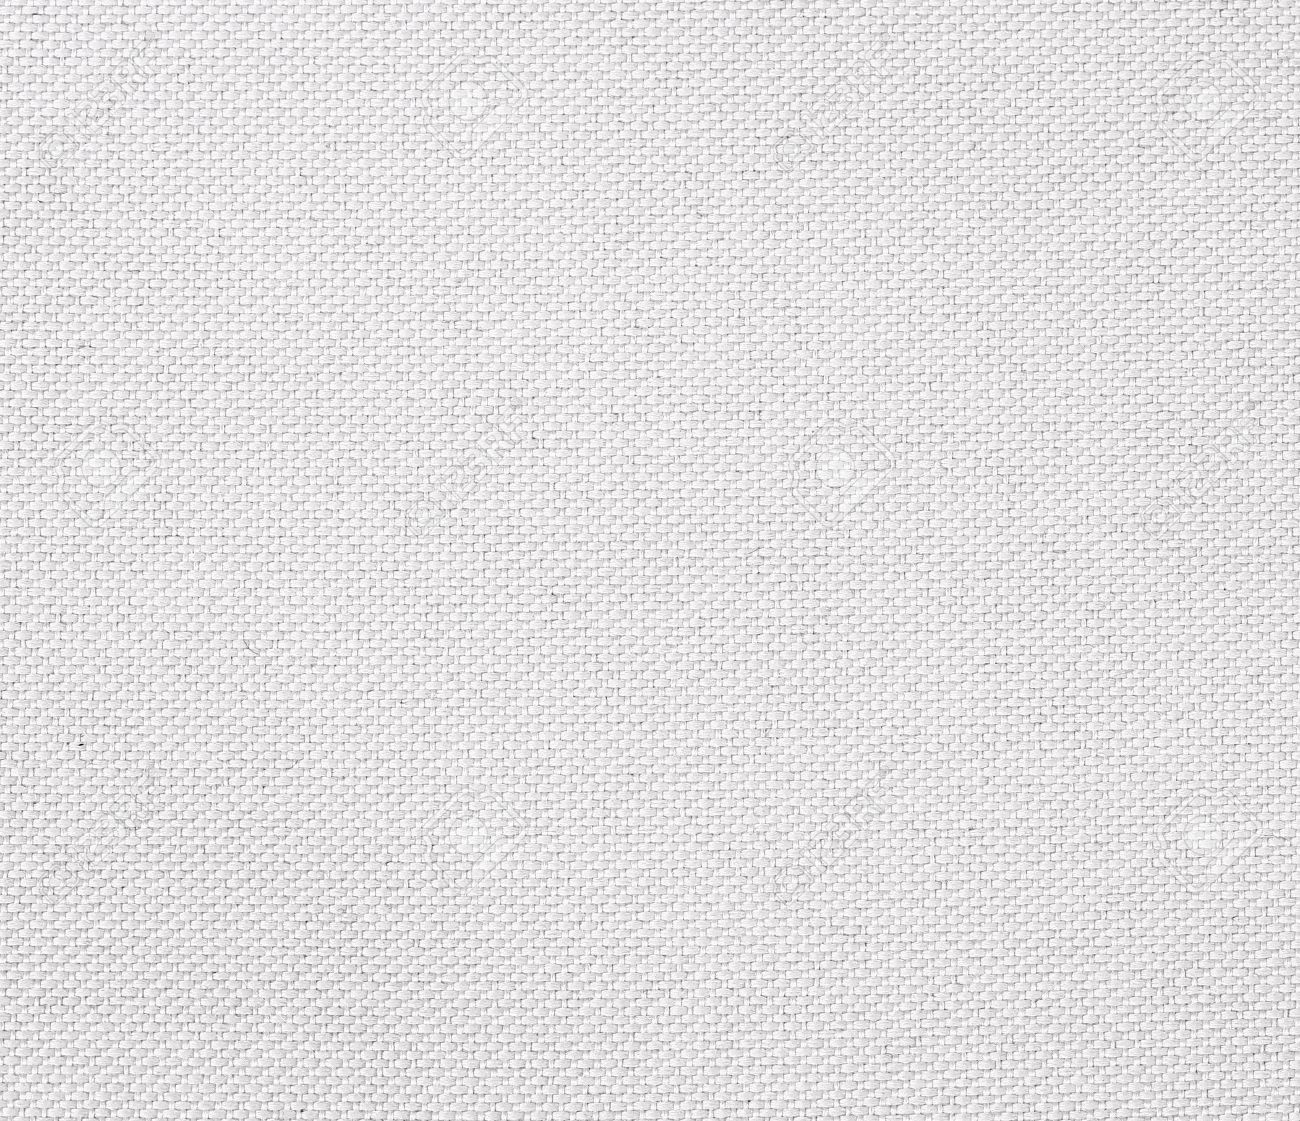 white fabric texture. white fabric texture. clothes background. close up stock photo - 16629937 texture i